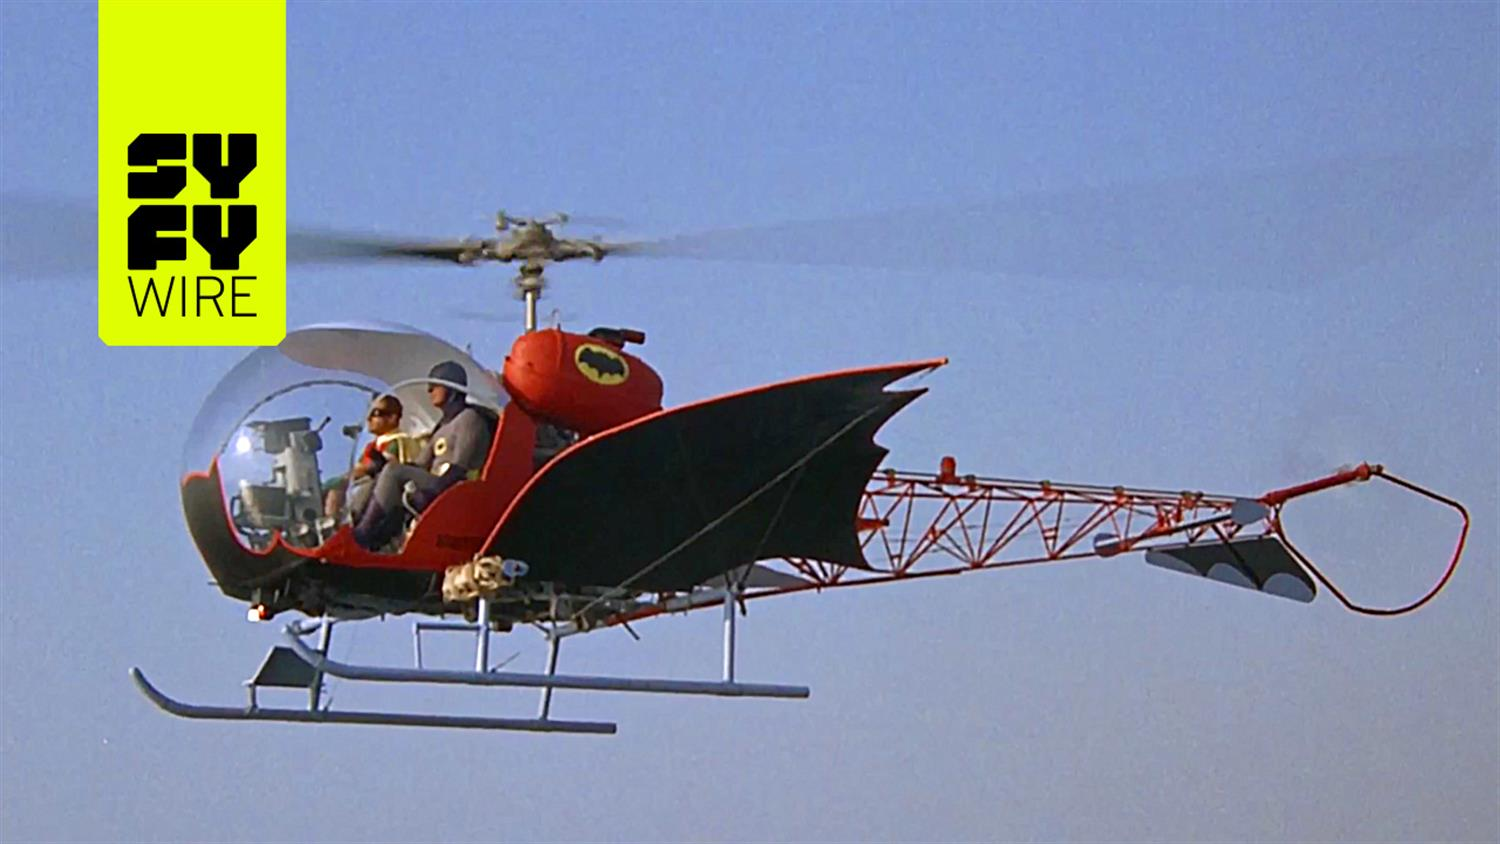 Take A Ride In The Batcopter From The 1960s TV Show